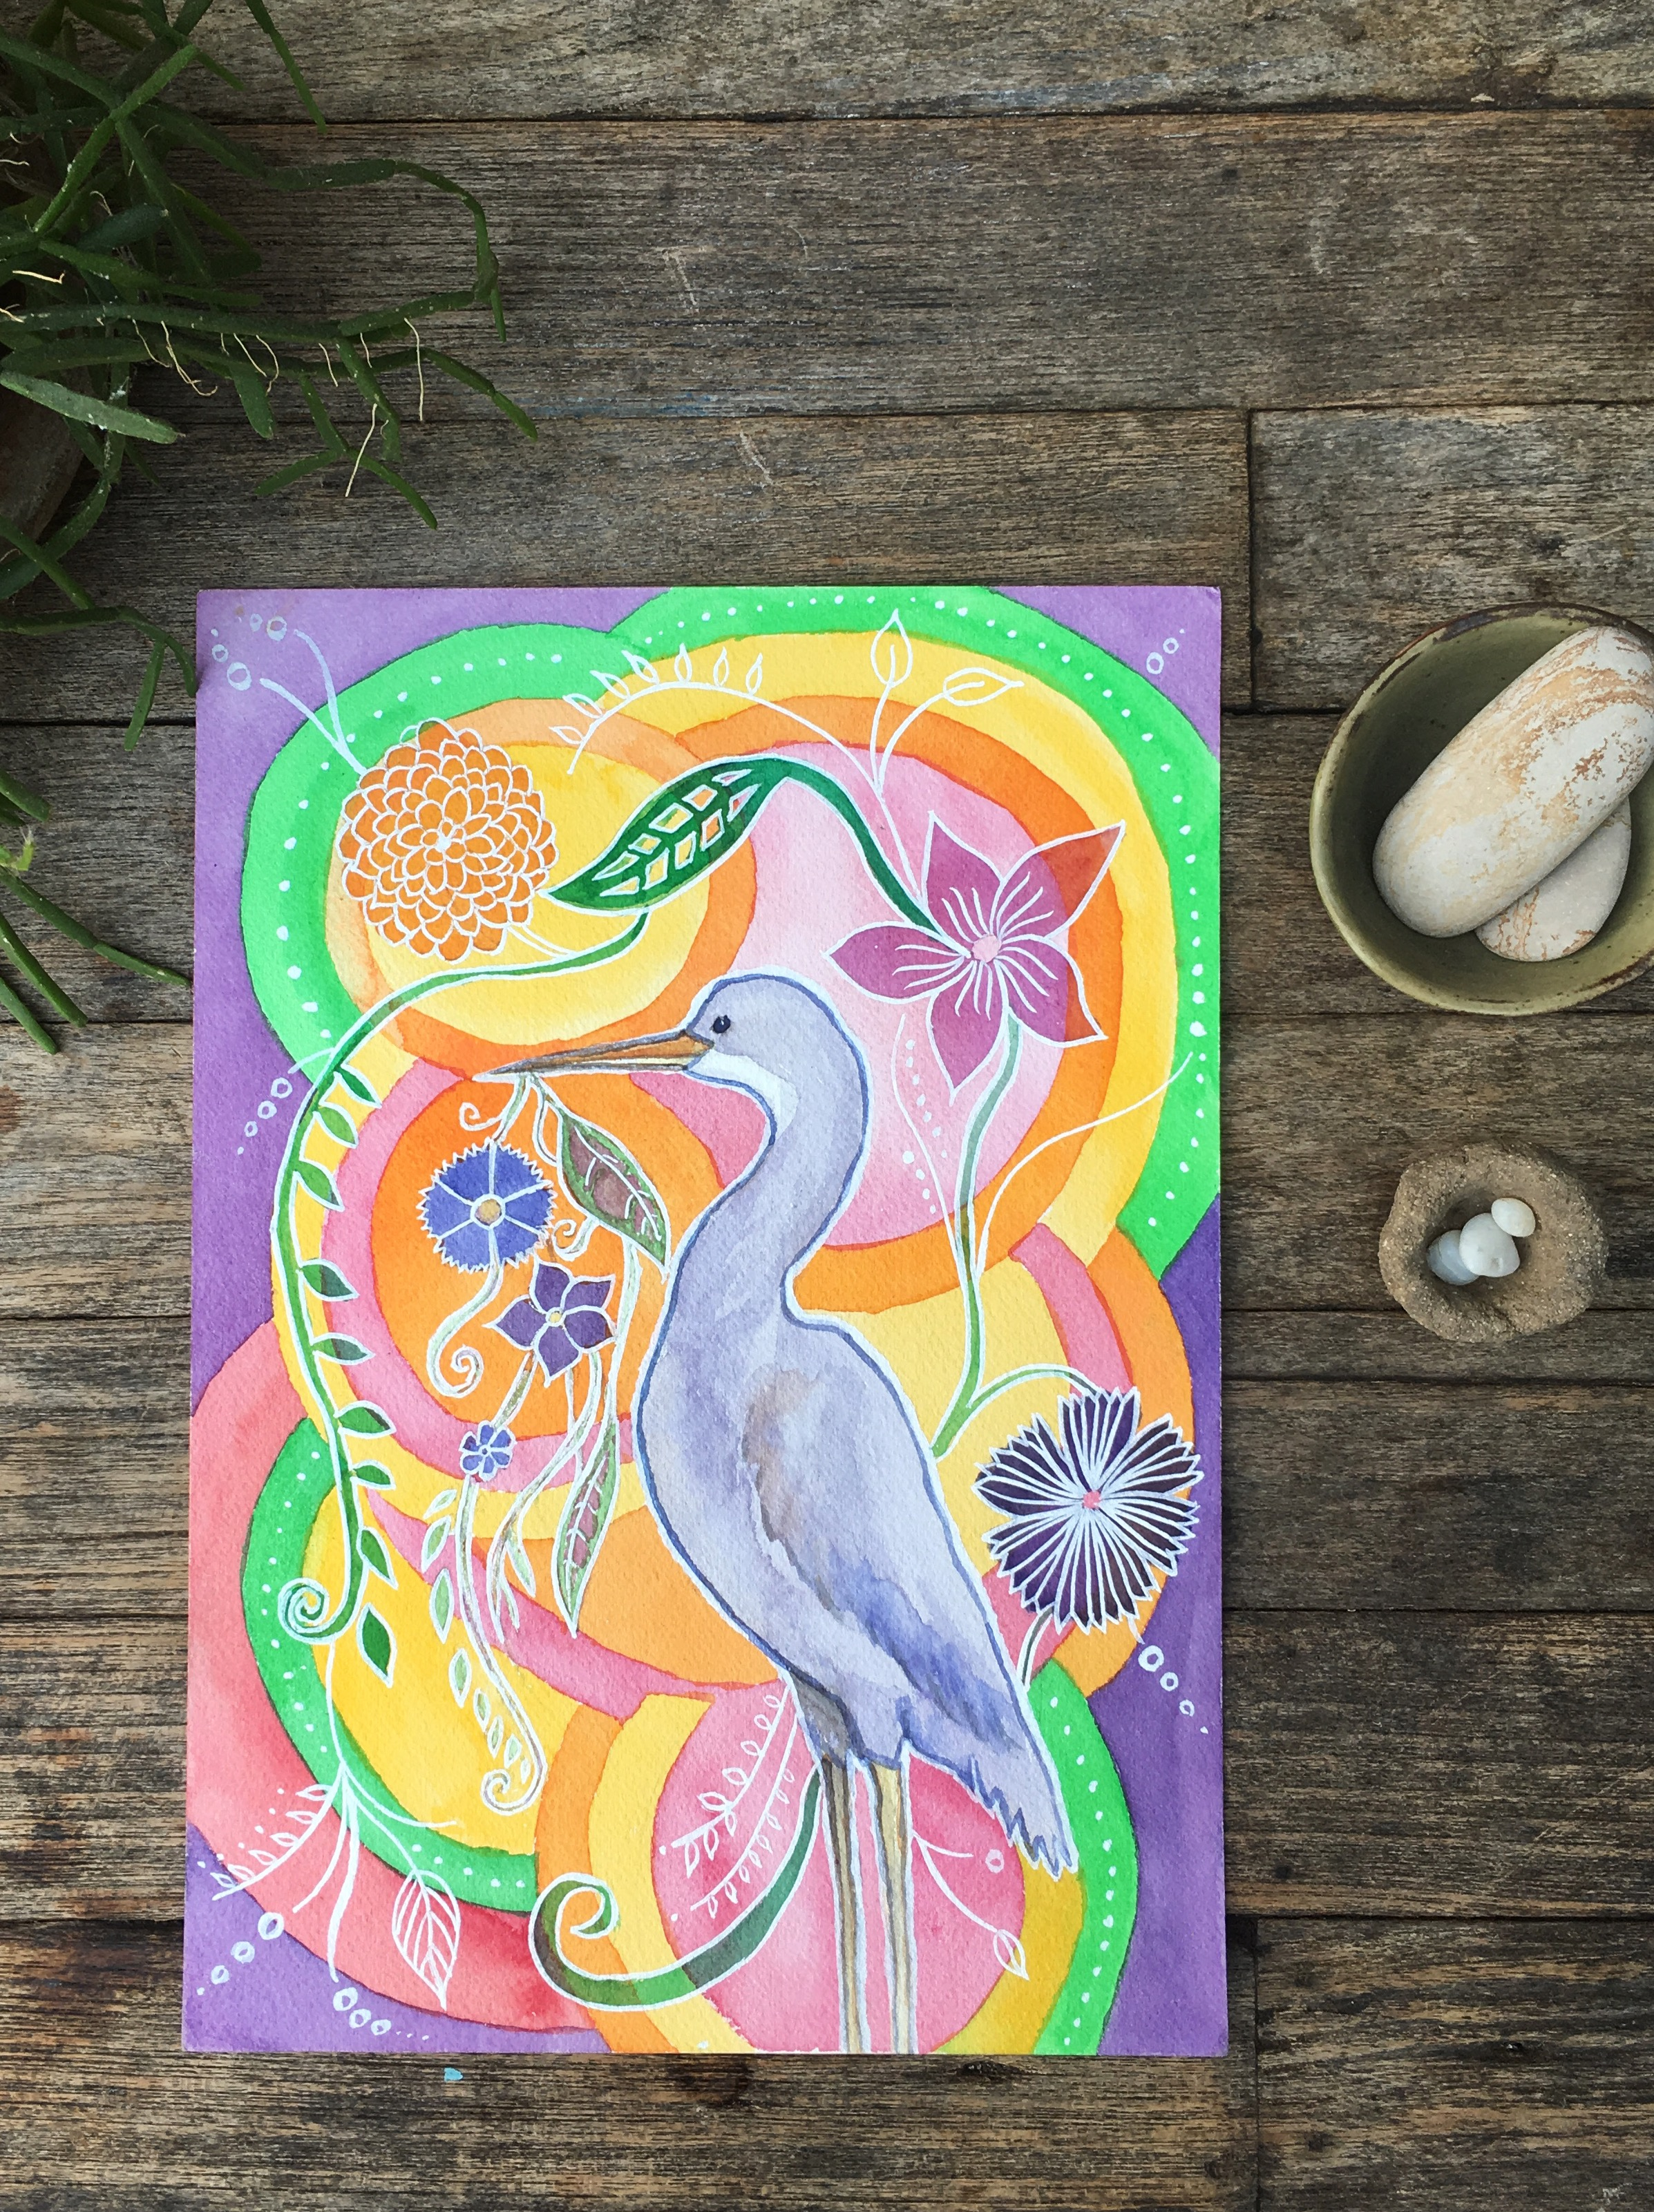 Heron dreams of flowers original.JPG